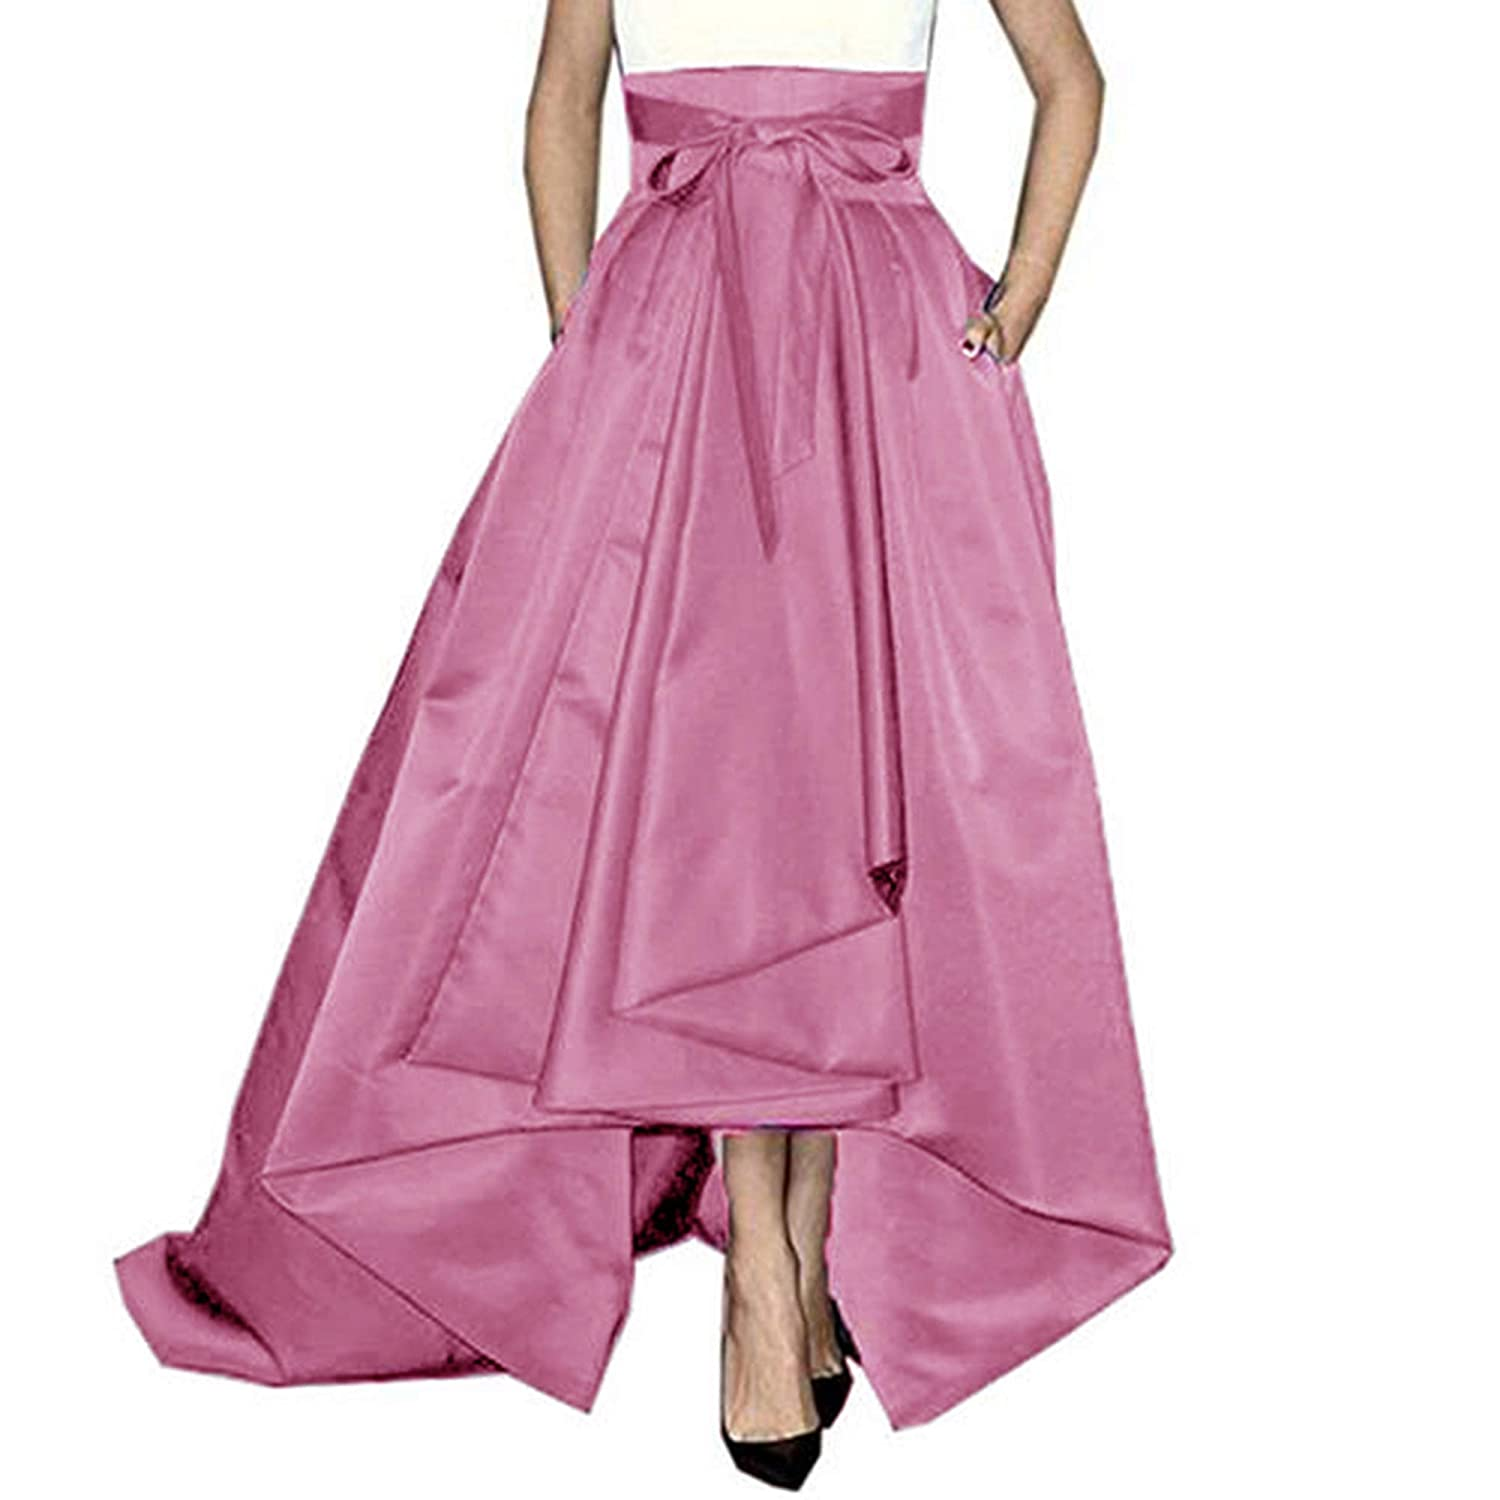 Lisong Women Floor Length High Low Bowknot Belt Satin Party Skirt